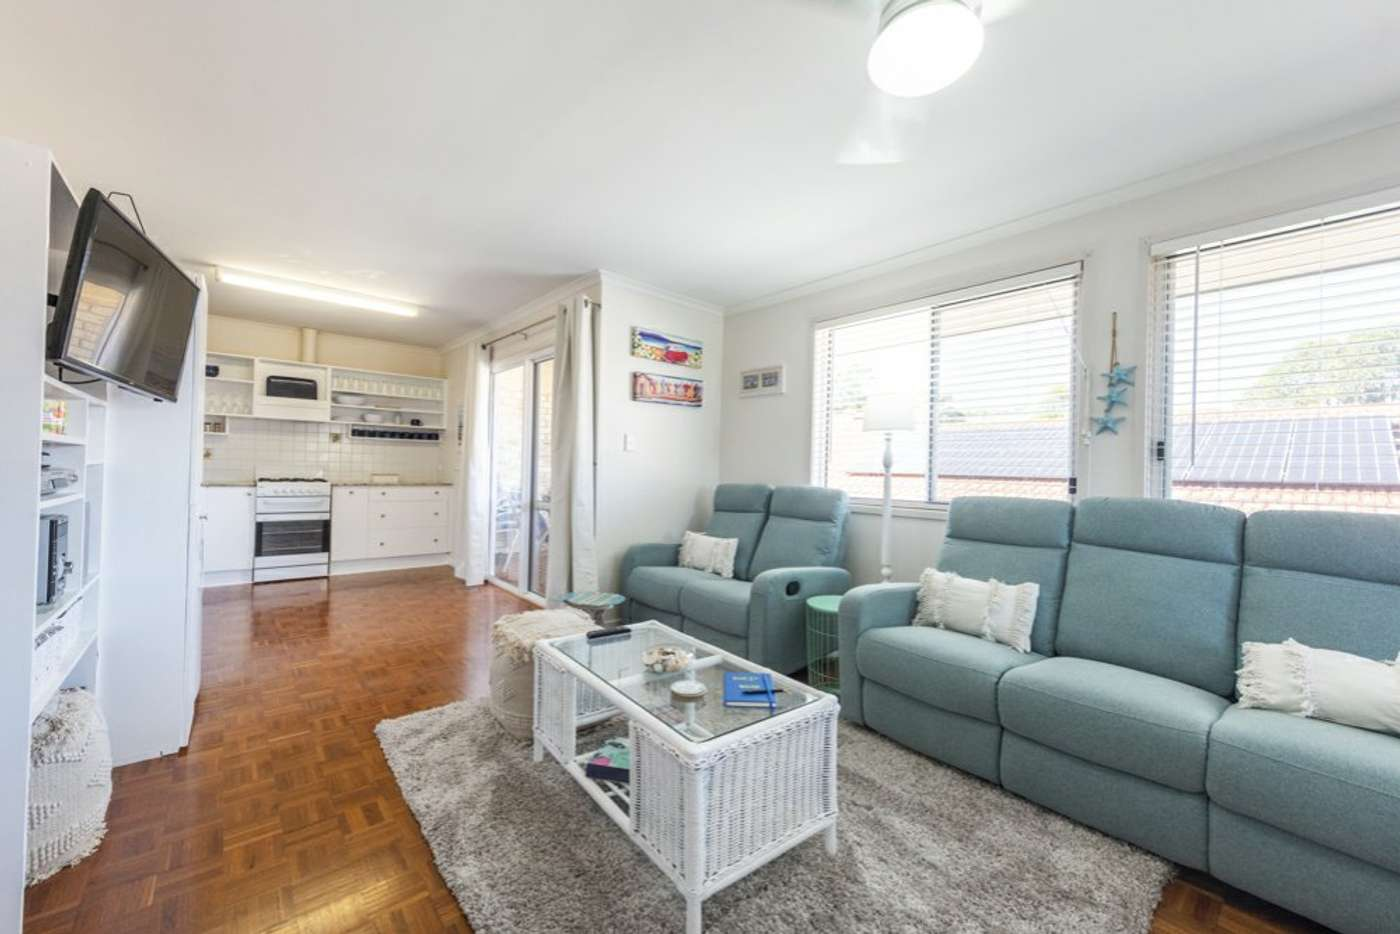 Main view of Homely unit listing, 4/56 Charles St, Iluka NSW 2466